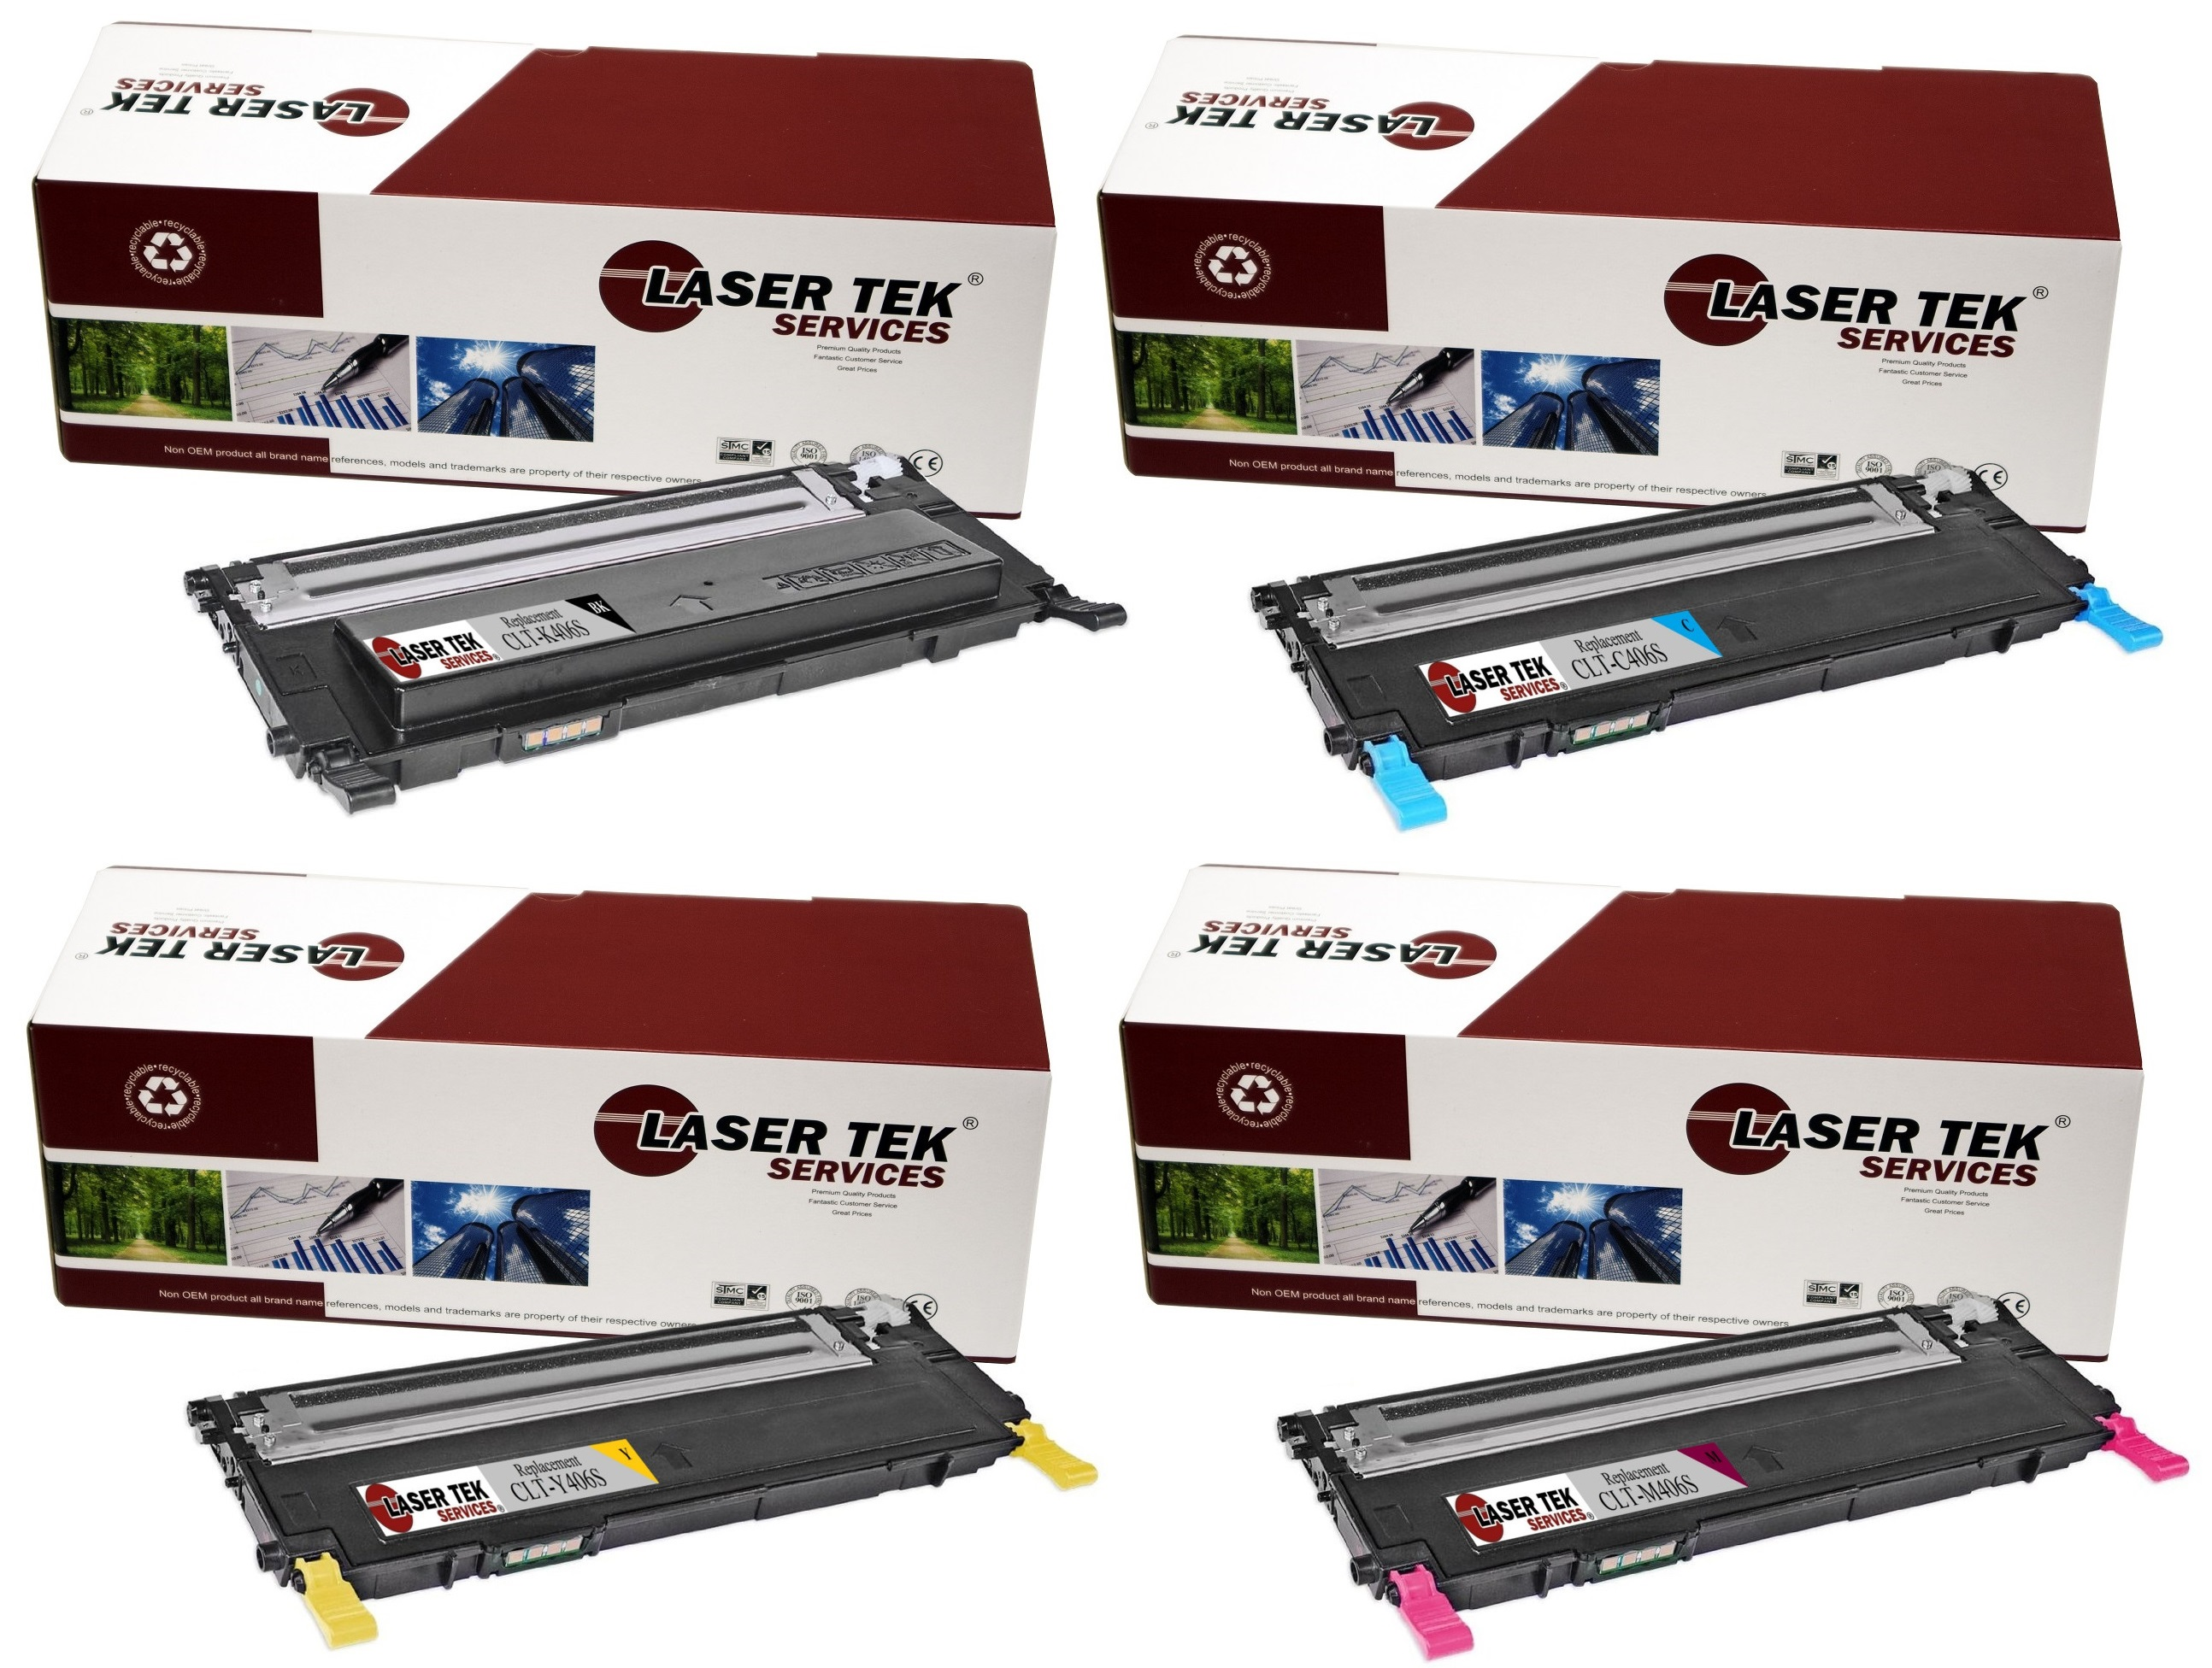 4pk clt 406s replacement toner cartridges for the samsung clp 365w clx 3305fw ebay. Black Bedroom Furniture Sets. Home Design Ideas